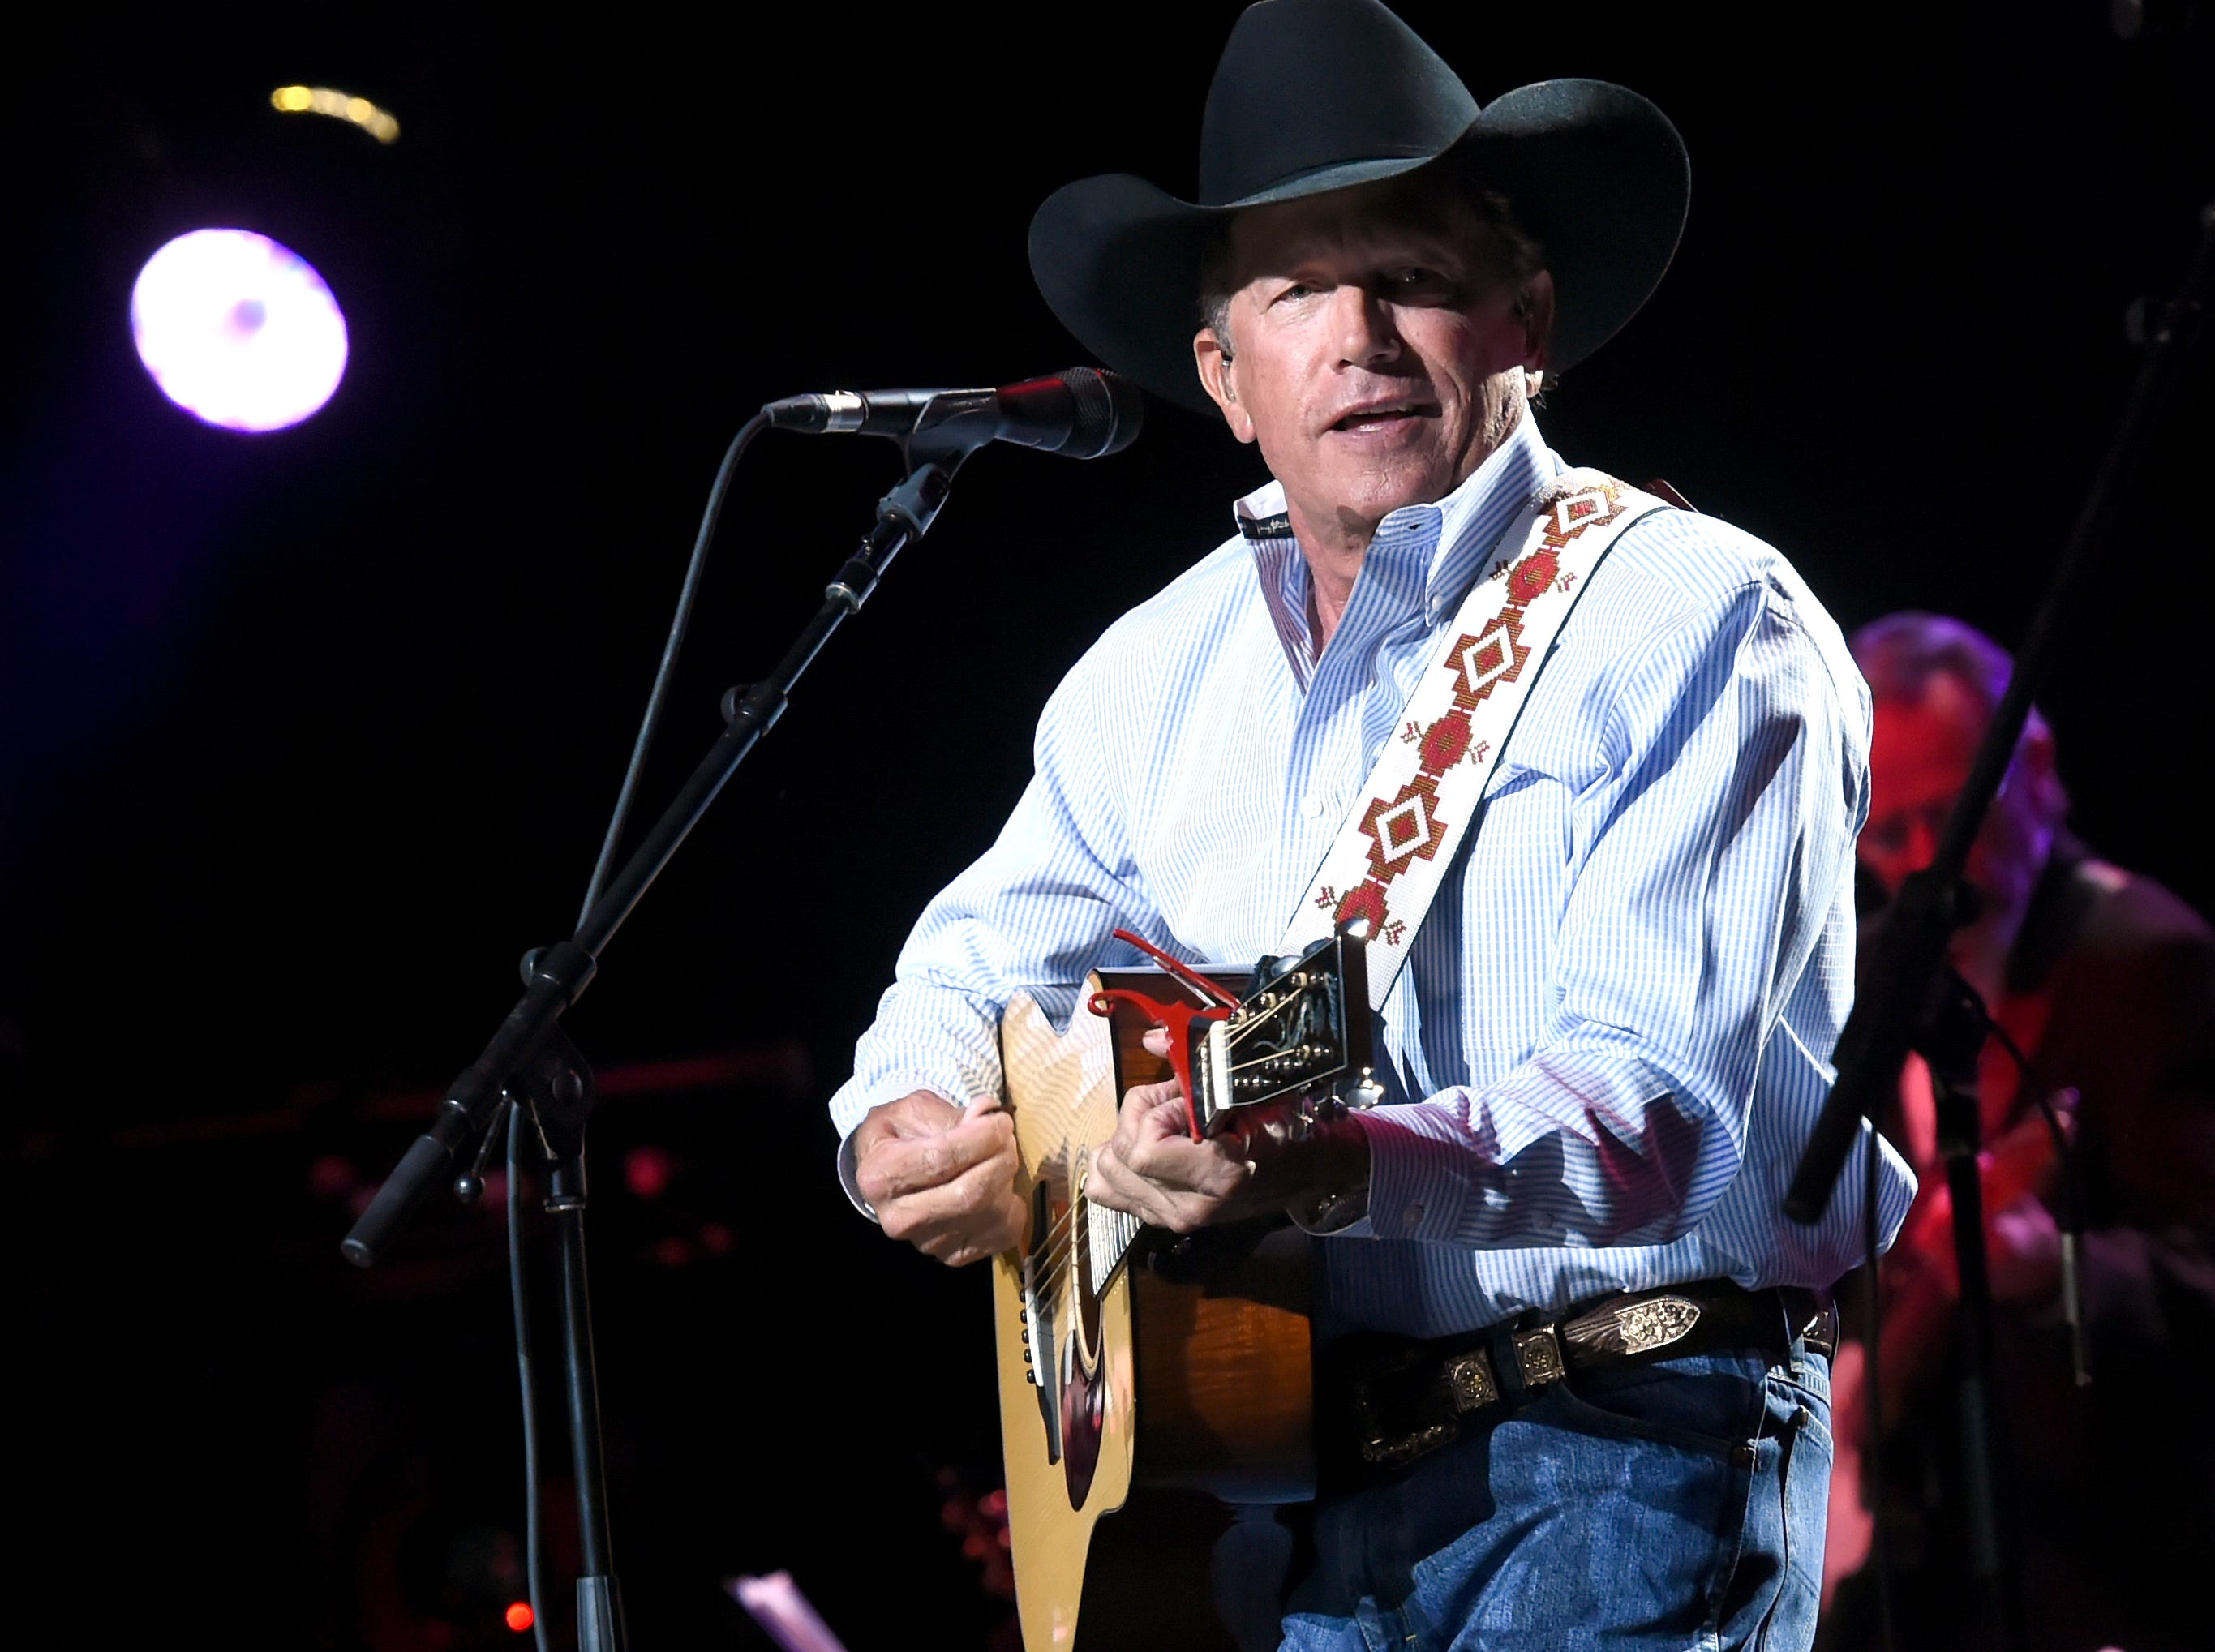 SAN ANTONIO, TX - SEPTEMBER 12:  In this handout photo provided by Hand in Hand, George Strait performs onstage during George Strait's Hand in Hand Texas benefit concert; Strait and special guests Miranda Lambert, Chris Stapleton, Lyle Lovett and Robert Early Keen perform in concert at the Majestic Theatre on September 12, 2017 in San Antonio, Texas.  (Photo by Rick Diamond/Hand in Hand/Getty Images) ORG XMIT: 775042785 ORIG FILE ID: 846230760